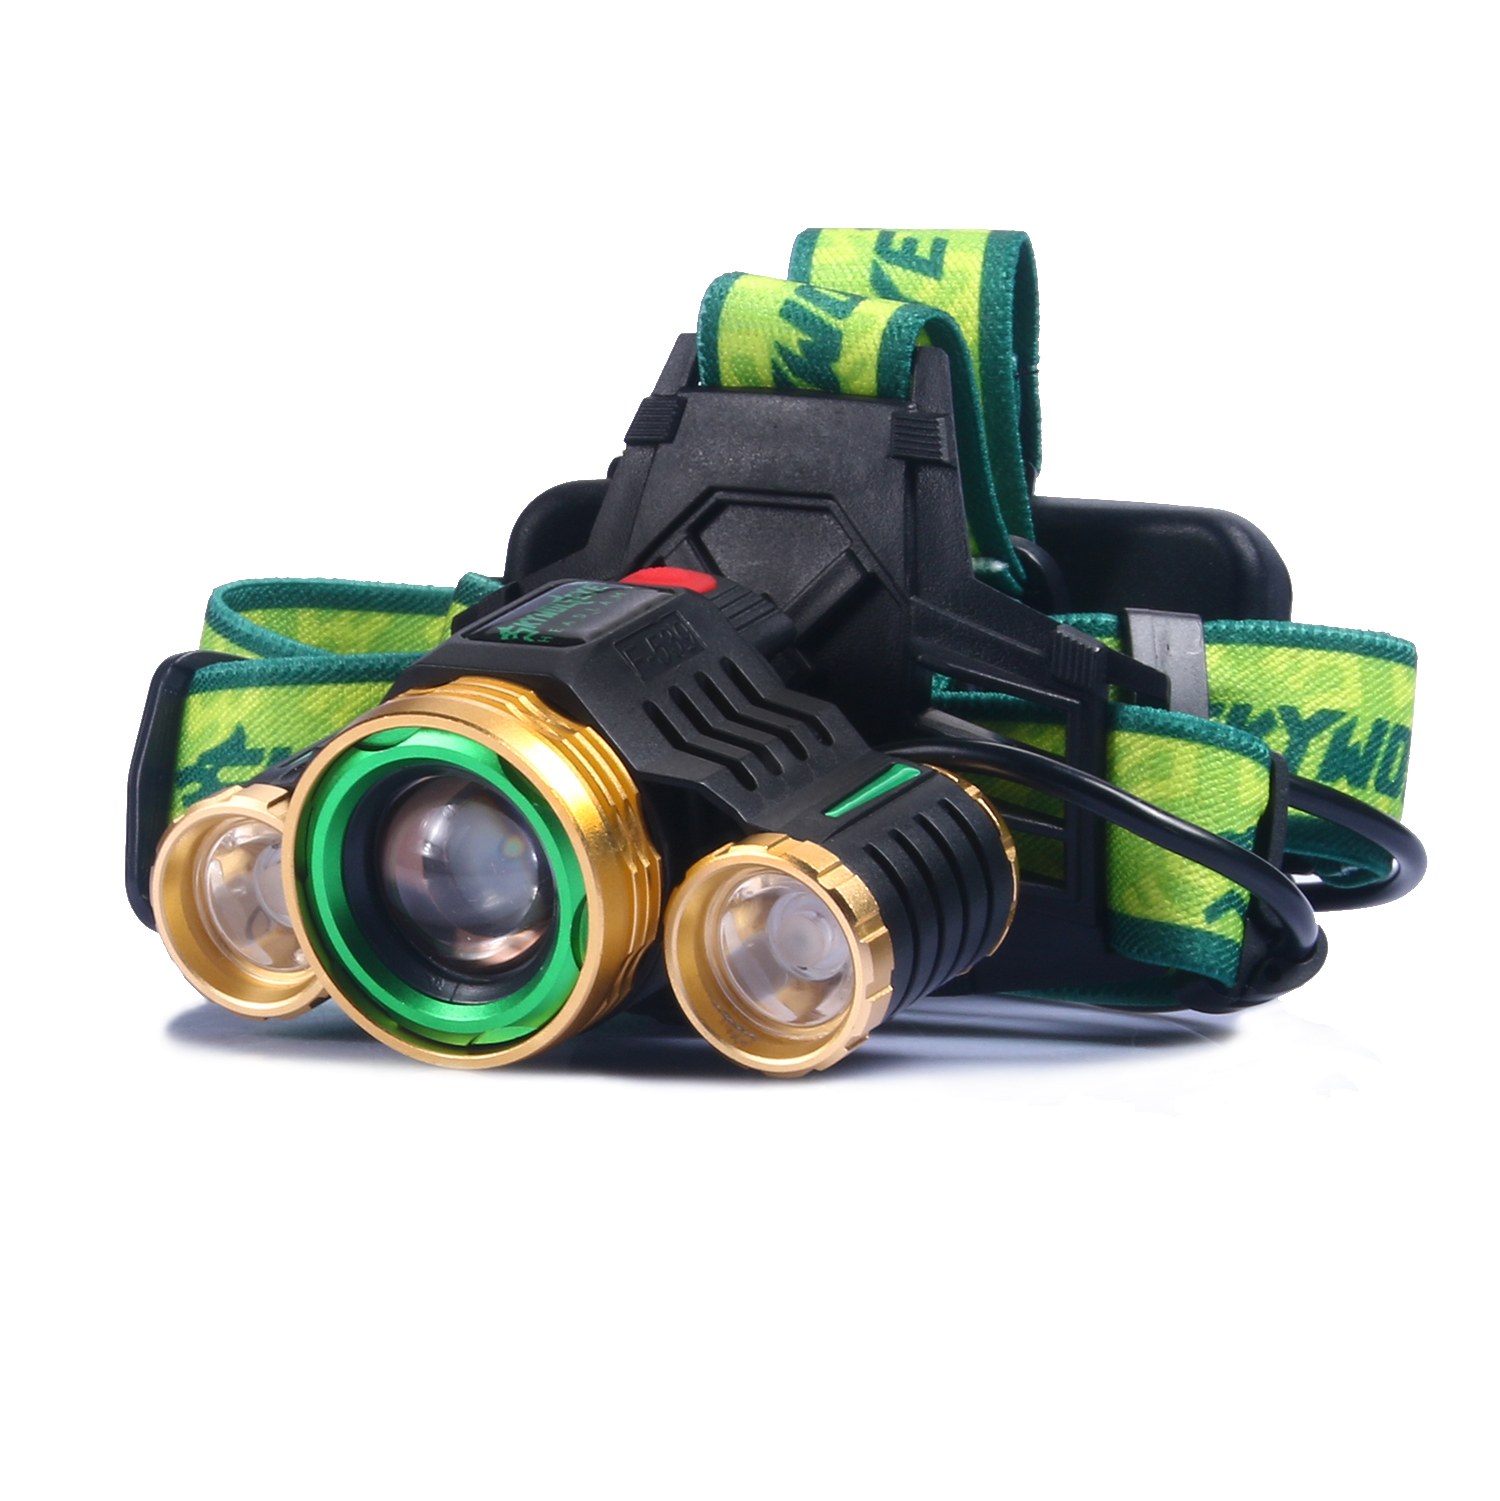 Cool XML T6 + XPE LED Headlamp Headlight 1000LM Super Bright Rechargeable Outdoor Gold Head Light Lamp Torch T0